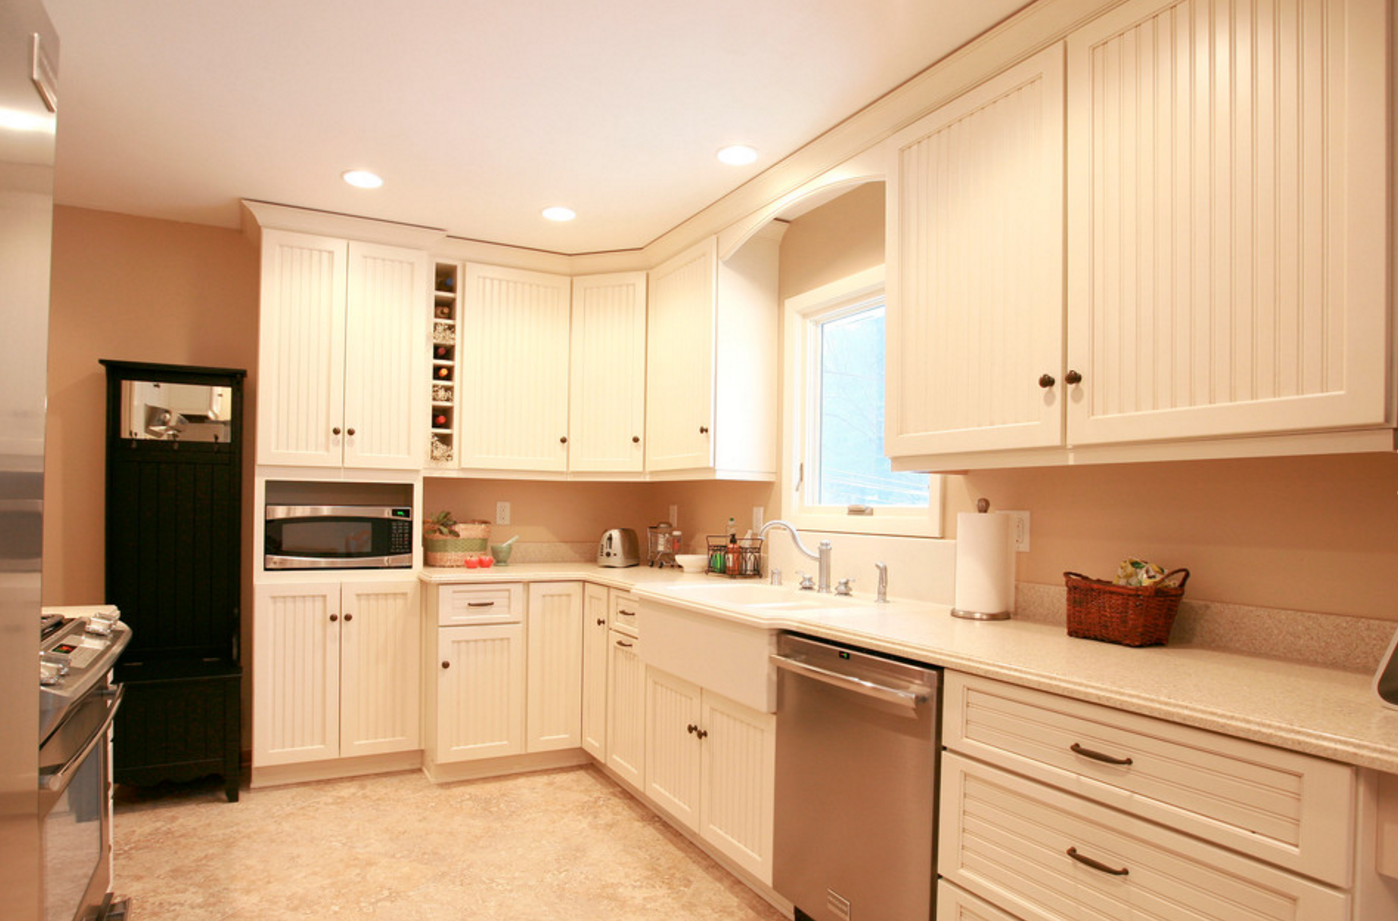 kitchen-remodel-madison-verona-middletonn-monona-wisconsin-25.png